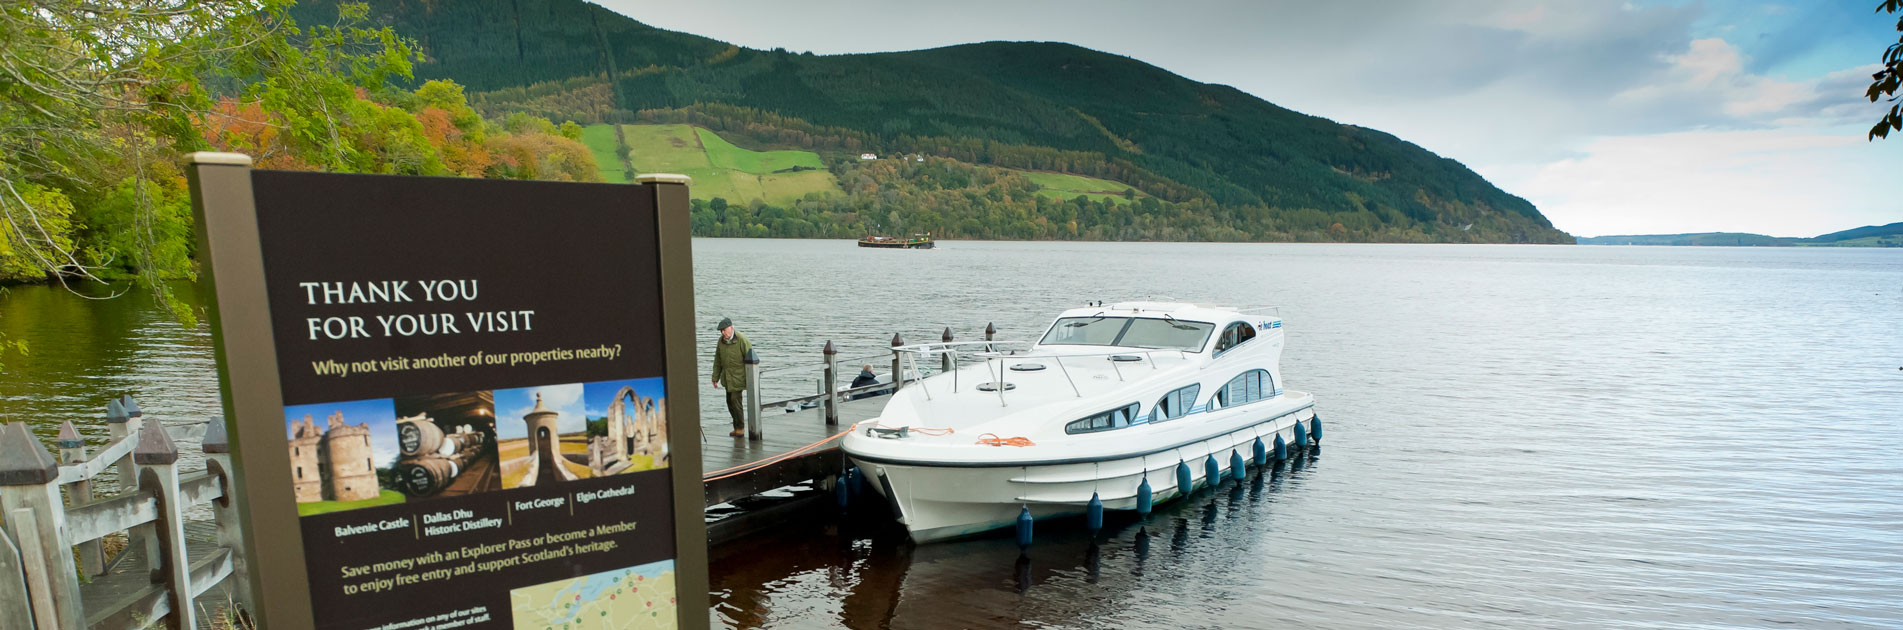 Riverboat in Scotland